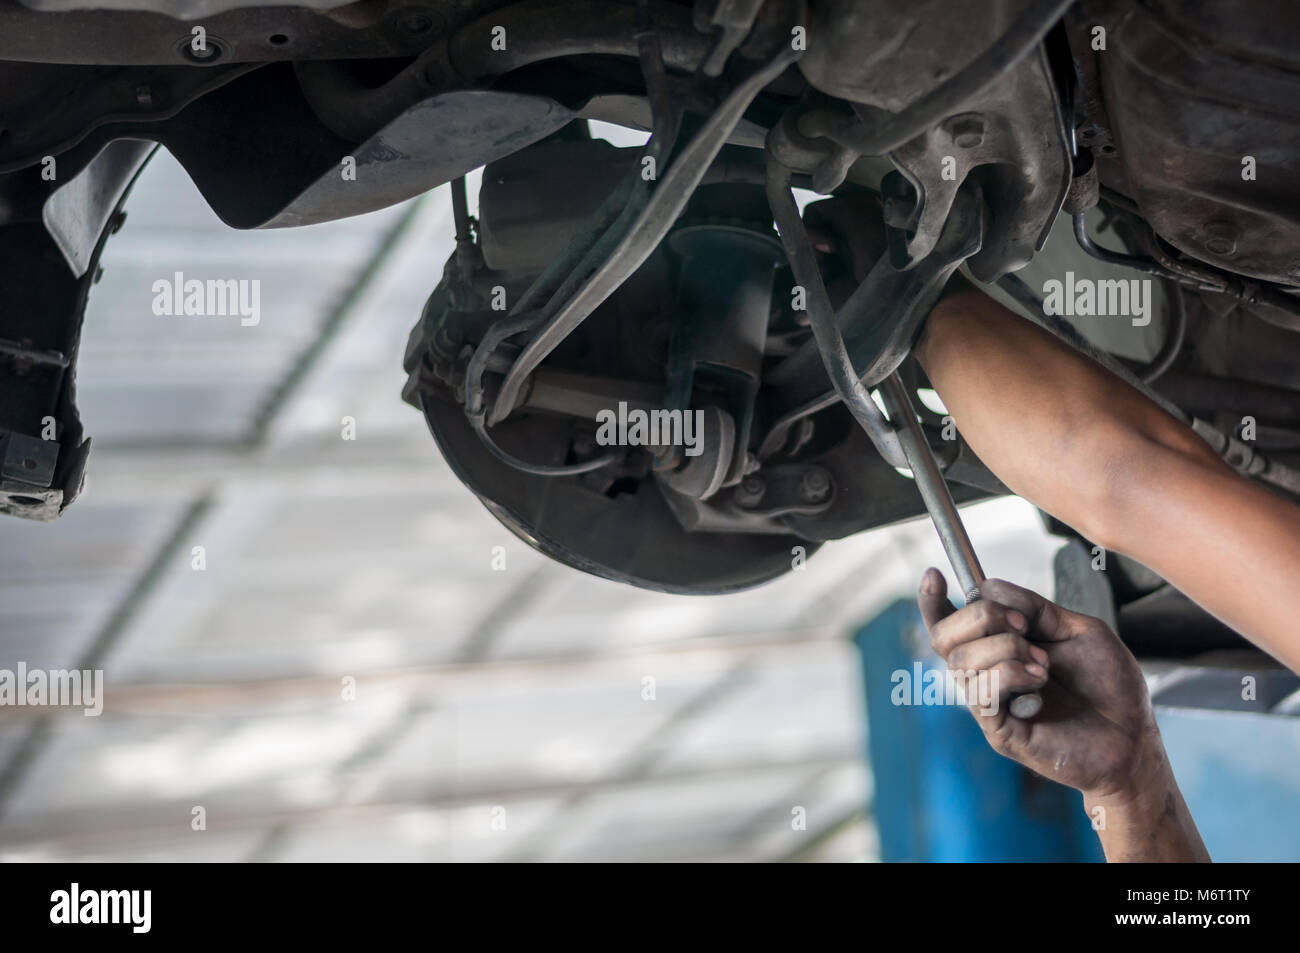 Auto mechanic asian checking bush-bolt under double wishbone suspension by hand with tools car lift - Stock Image